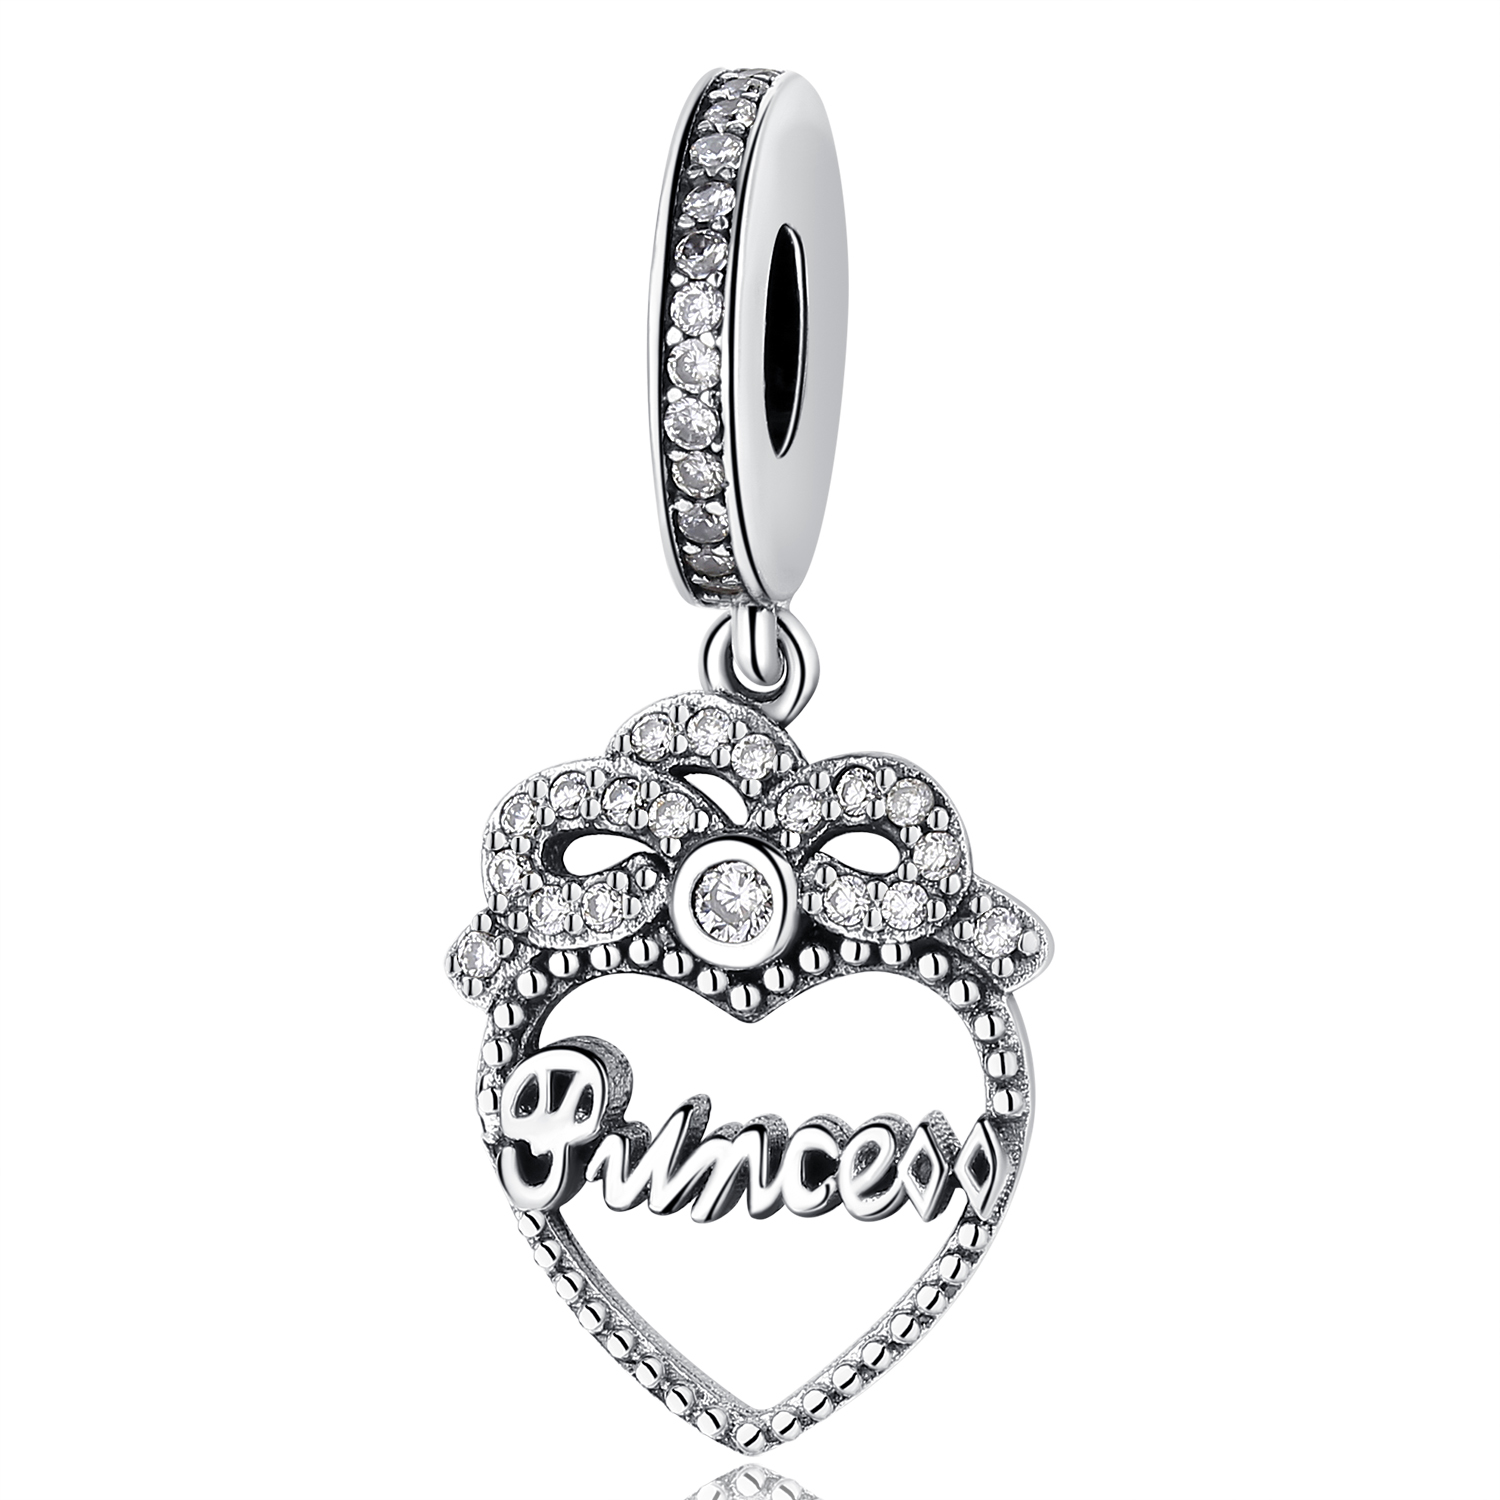 ed8f1b4f8 Aliexpress.com : Buy NEW Authentic 925 Sterling Silver Bead Love Heart Mom  Home Family Forever Charm Fit Pandora Original Bracelets & Bangles Jewelry  from ...